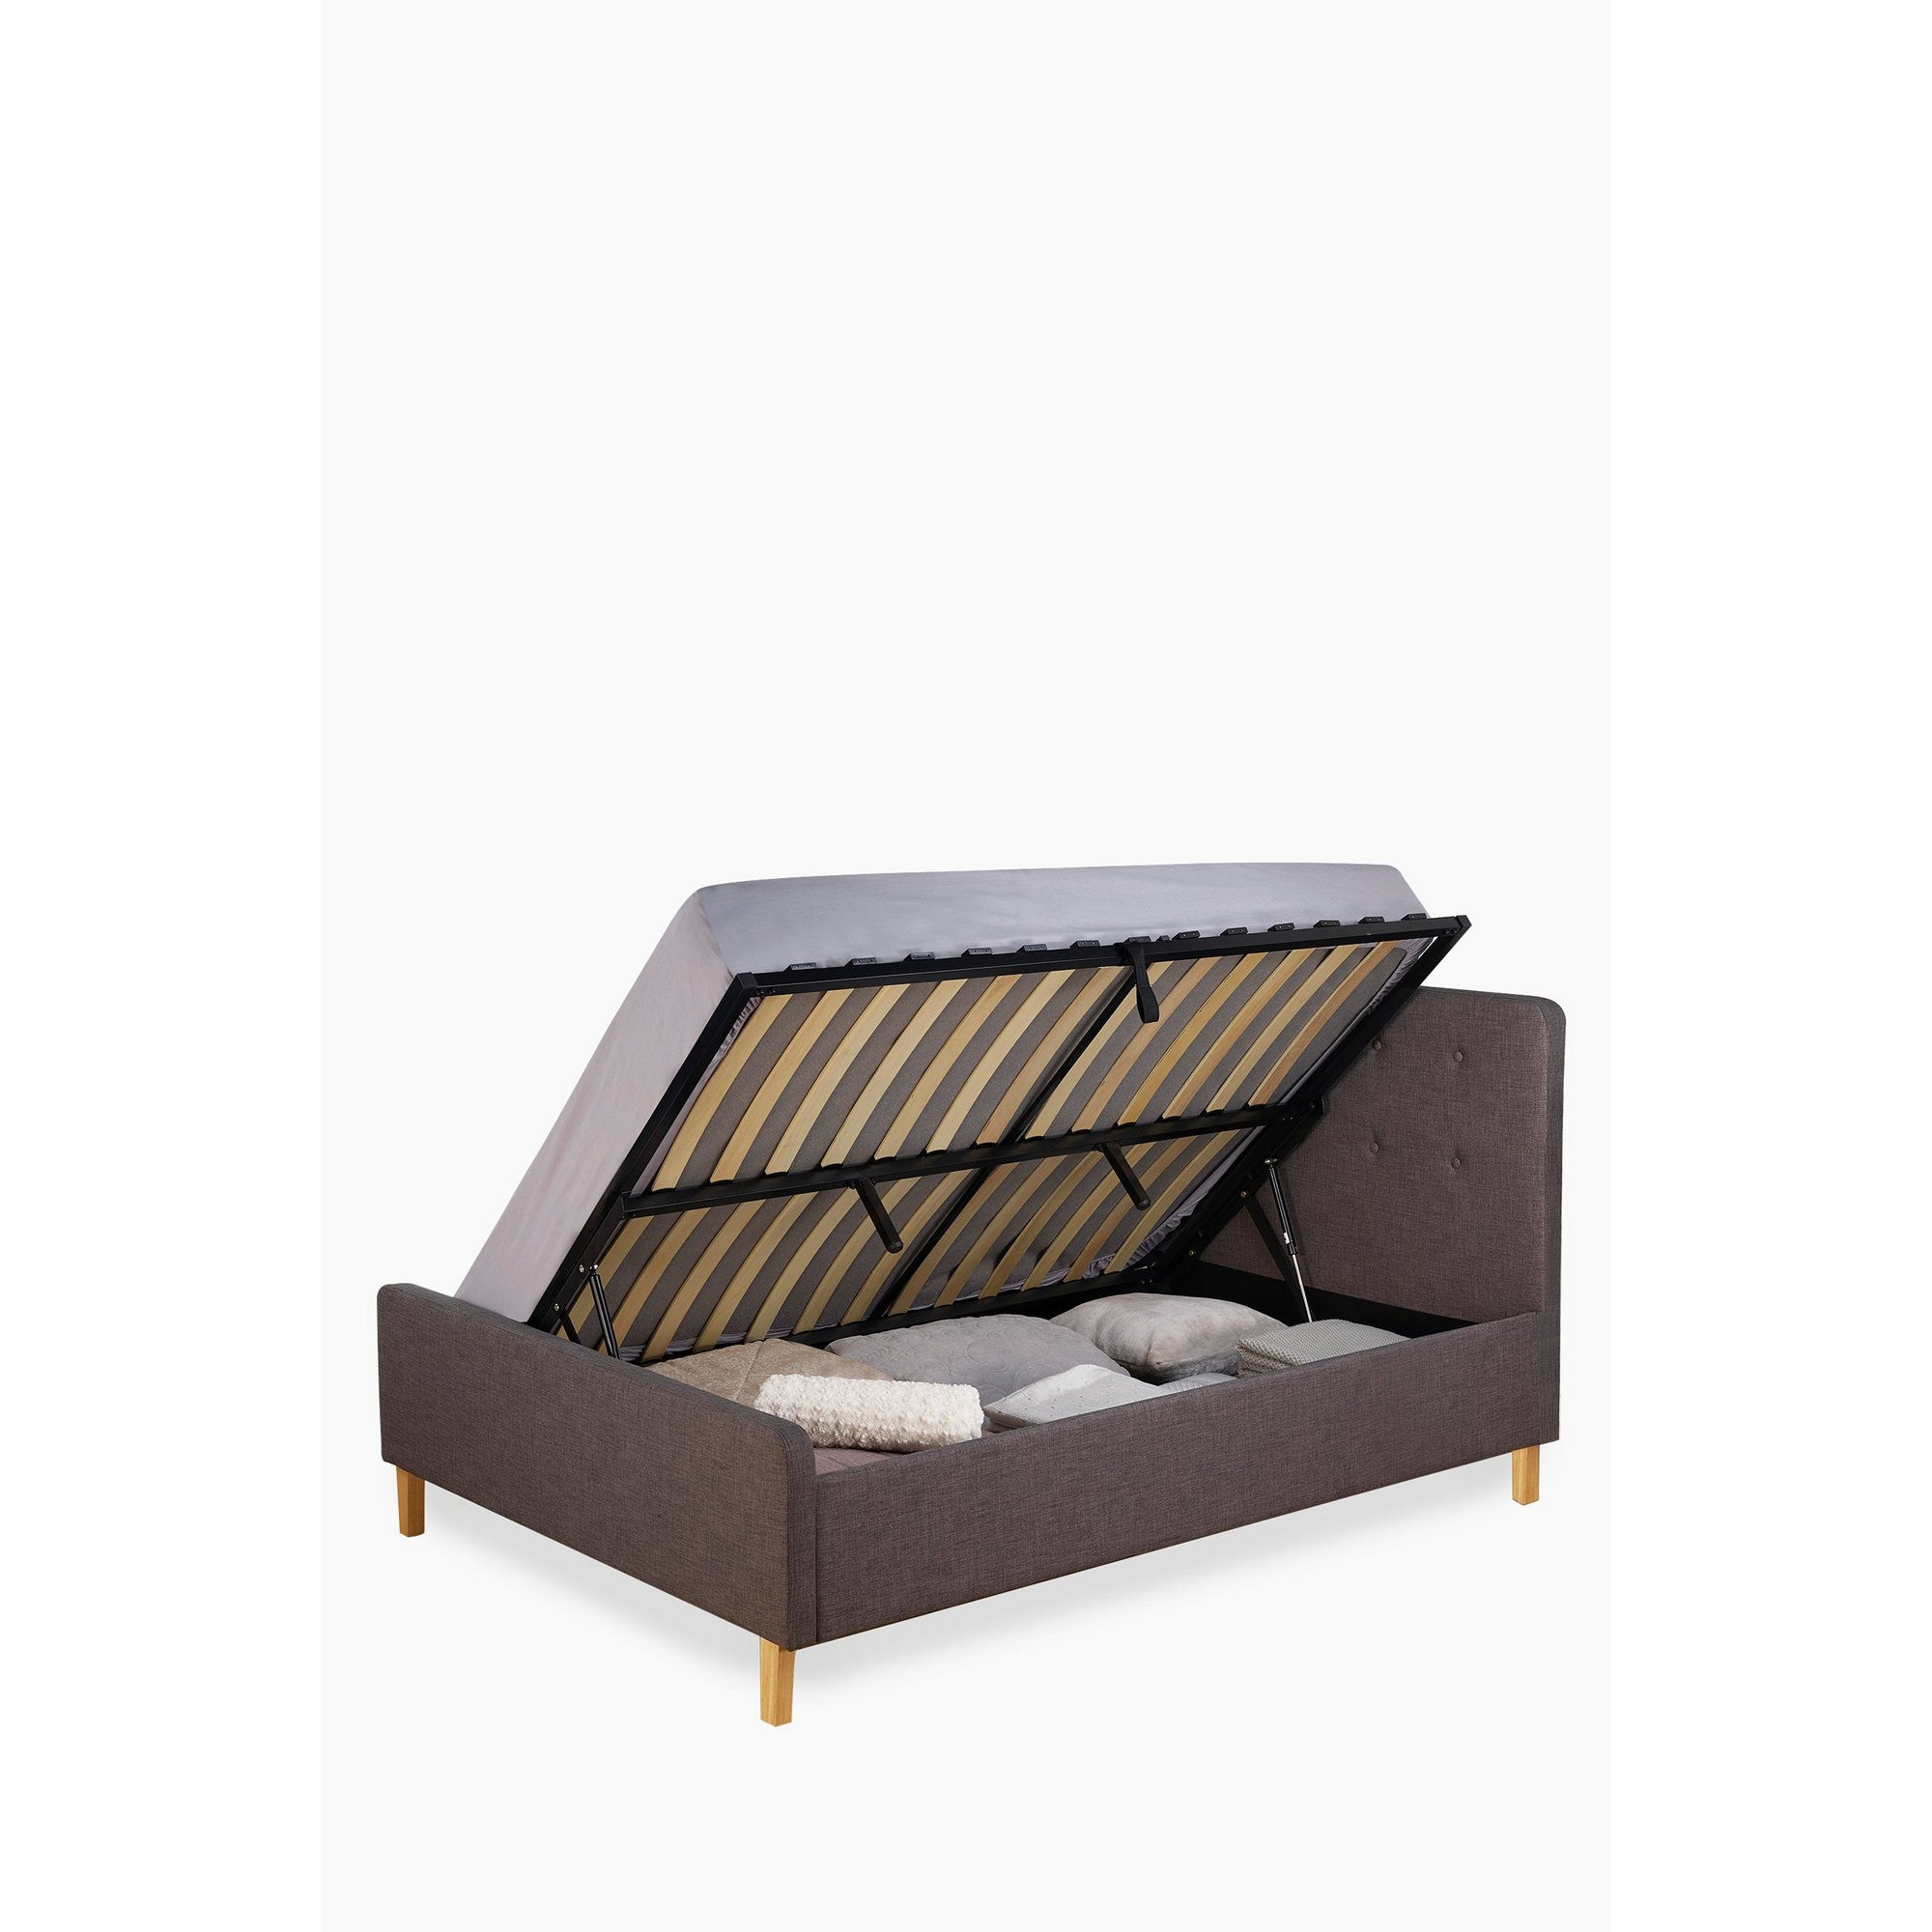 Image of Ashbourne Ottoman Bed with Mattress